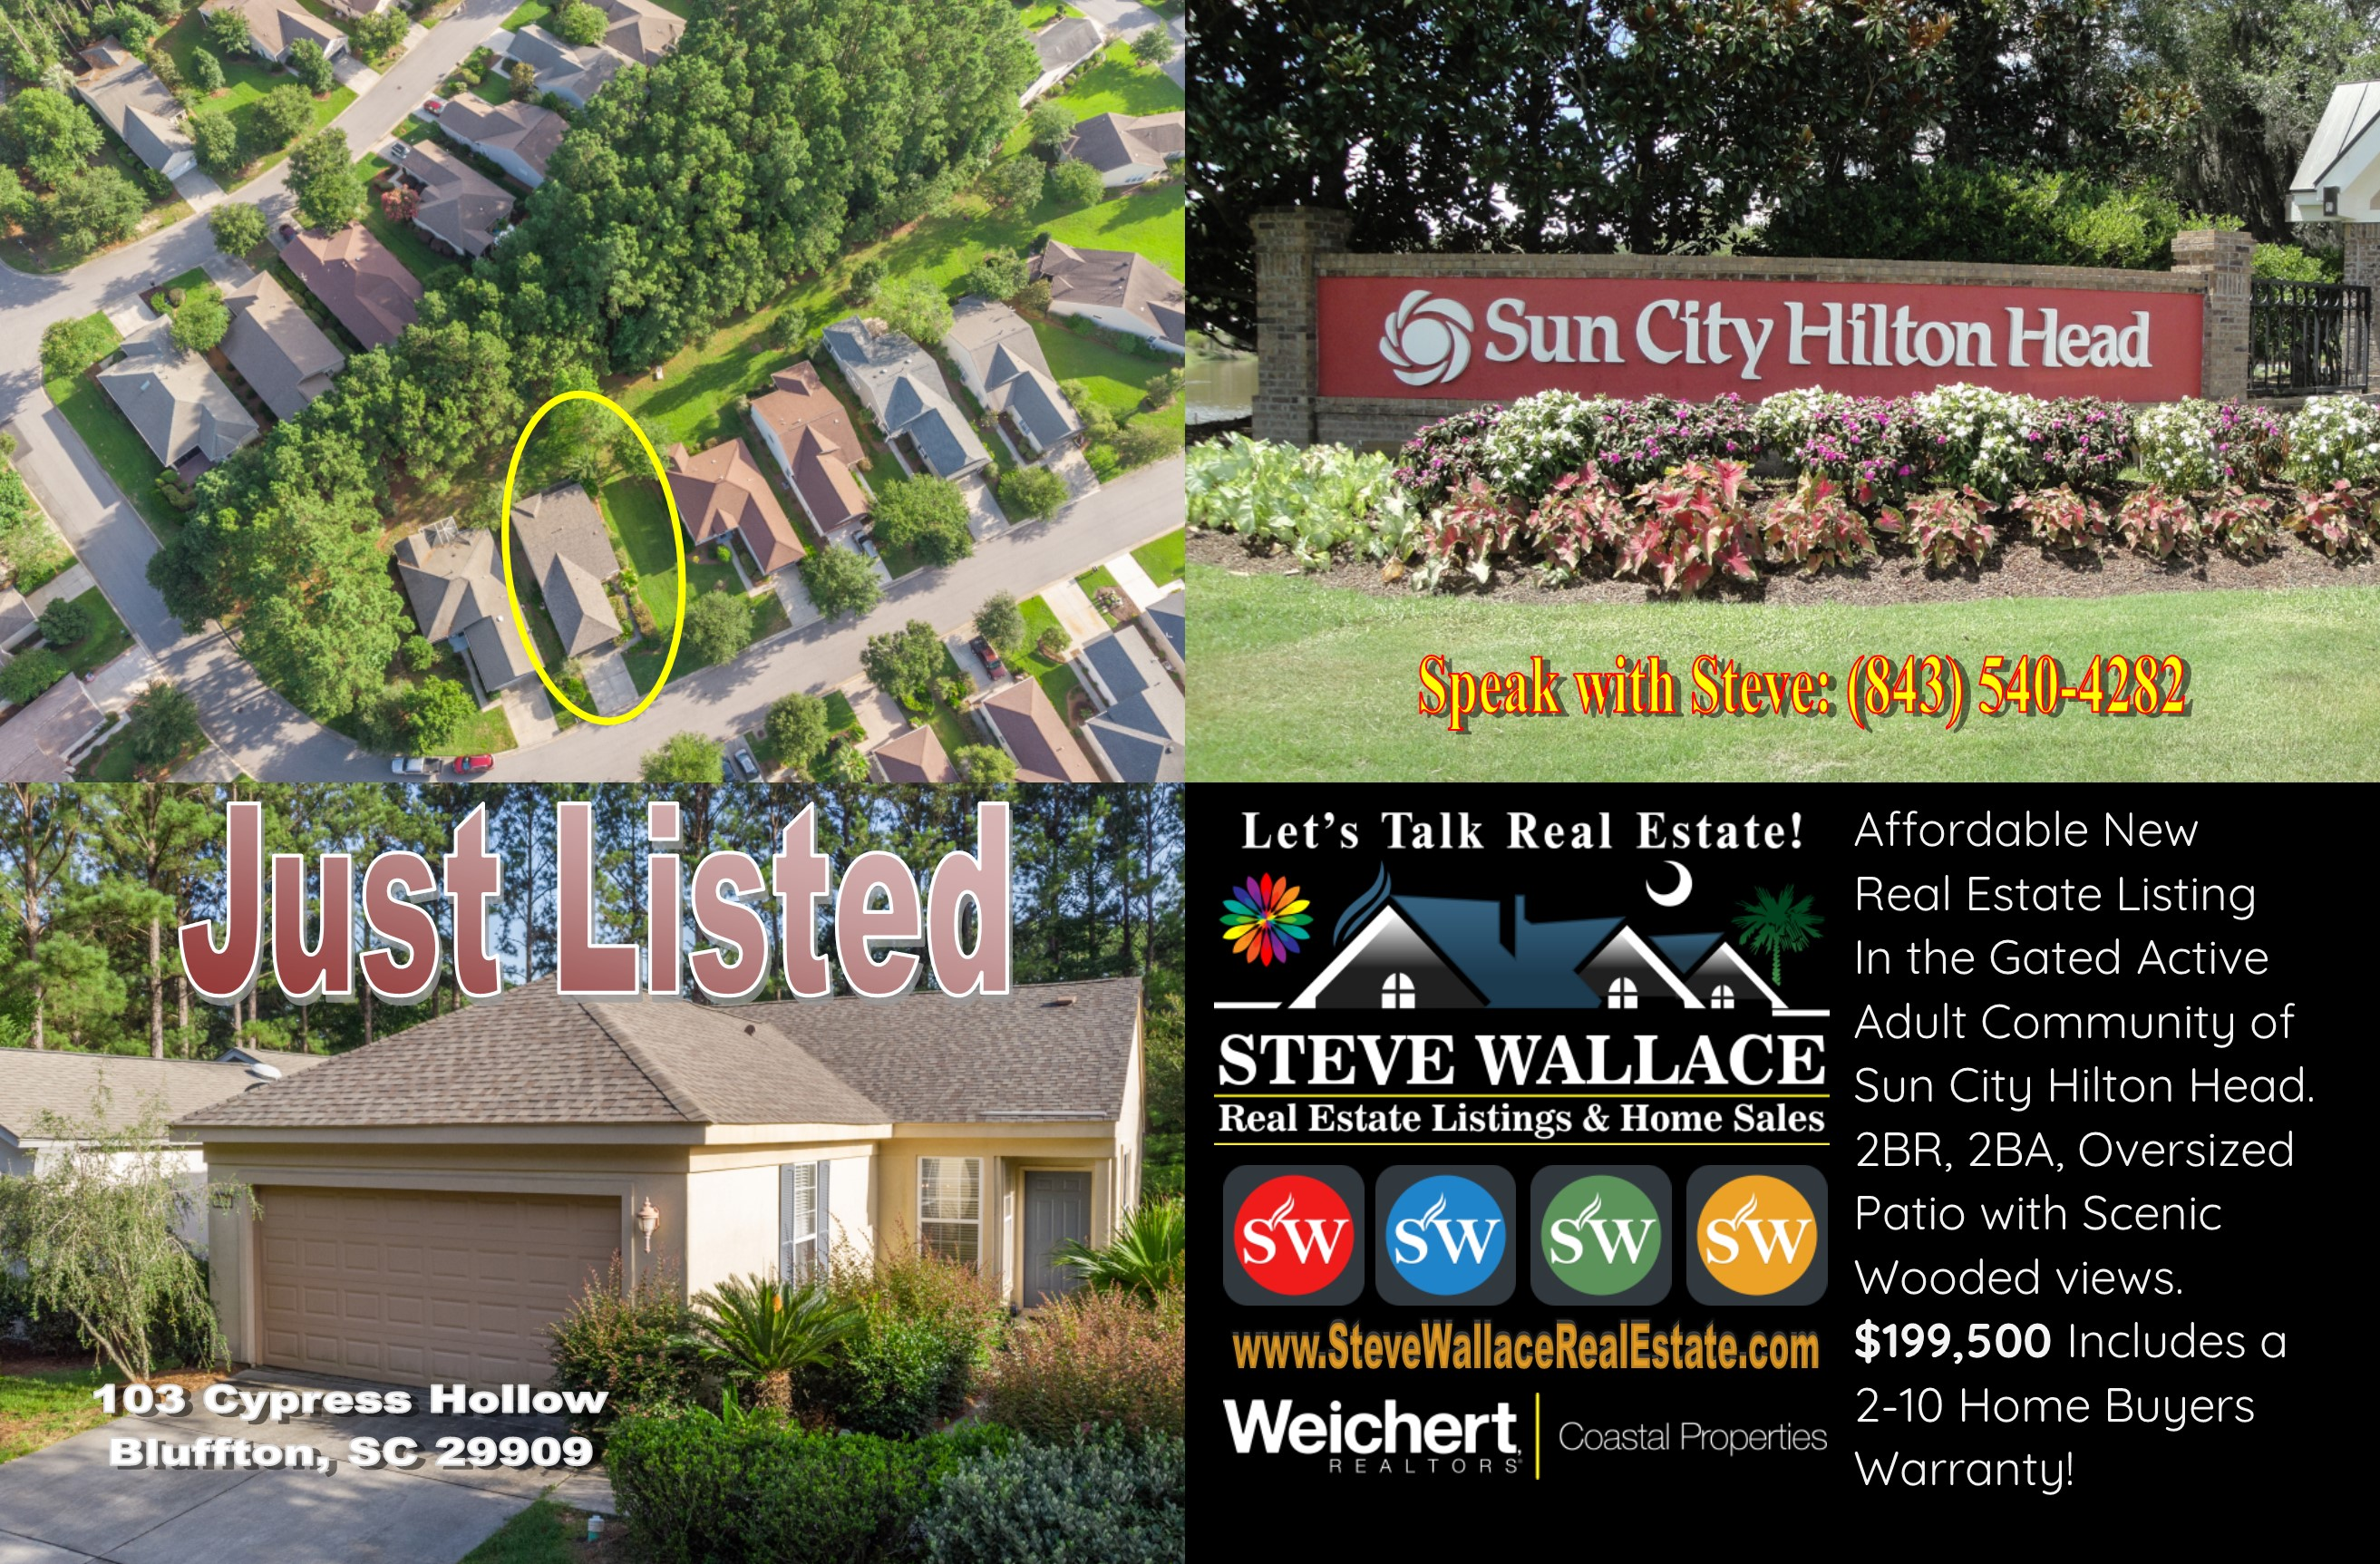 Sun City Hilton Head, Just Listed, Homes for Sale, Okatie, SC, Bluffton, Real Estate